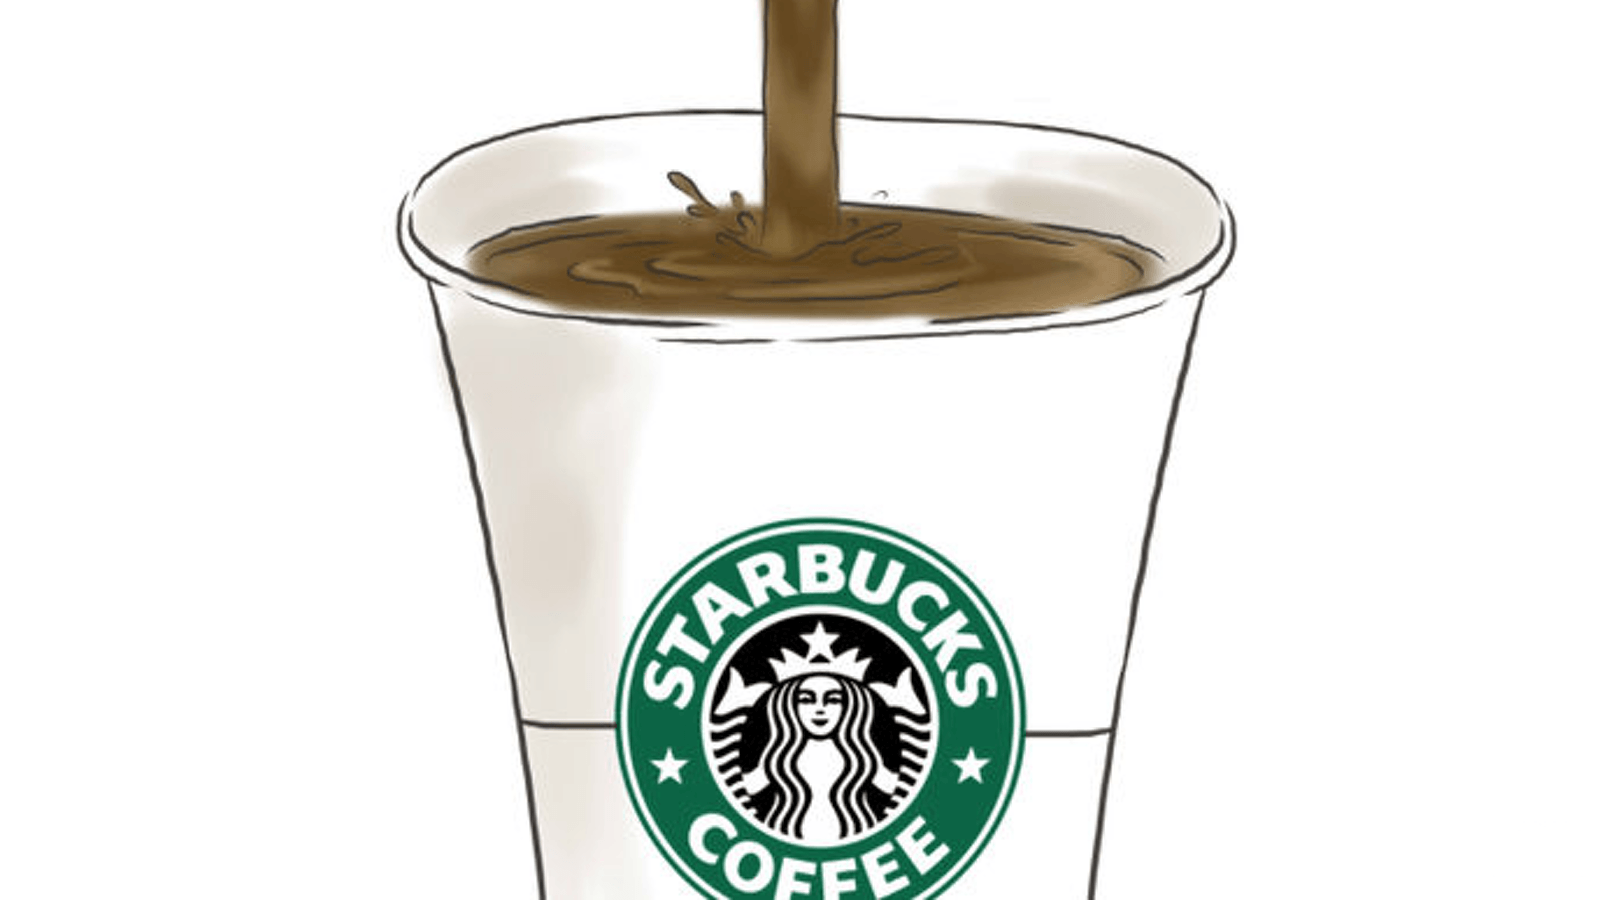 VAMERS - FYI - LIFESTYLE - Ordering at Starbucks- A Guide to Starbucks Lingo - Starbucks Espresso